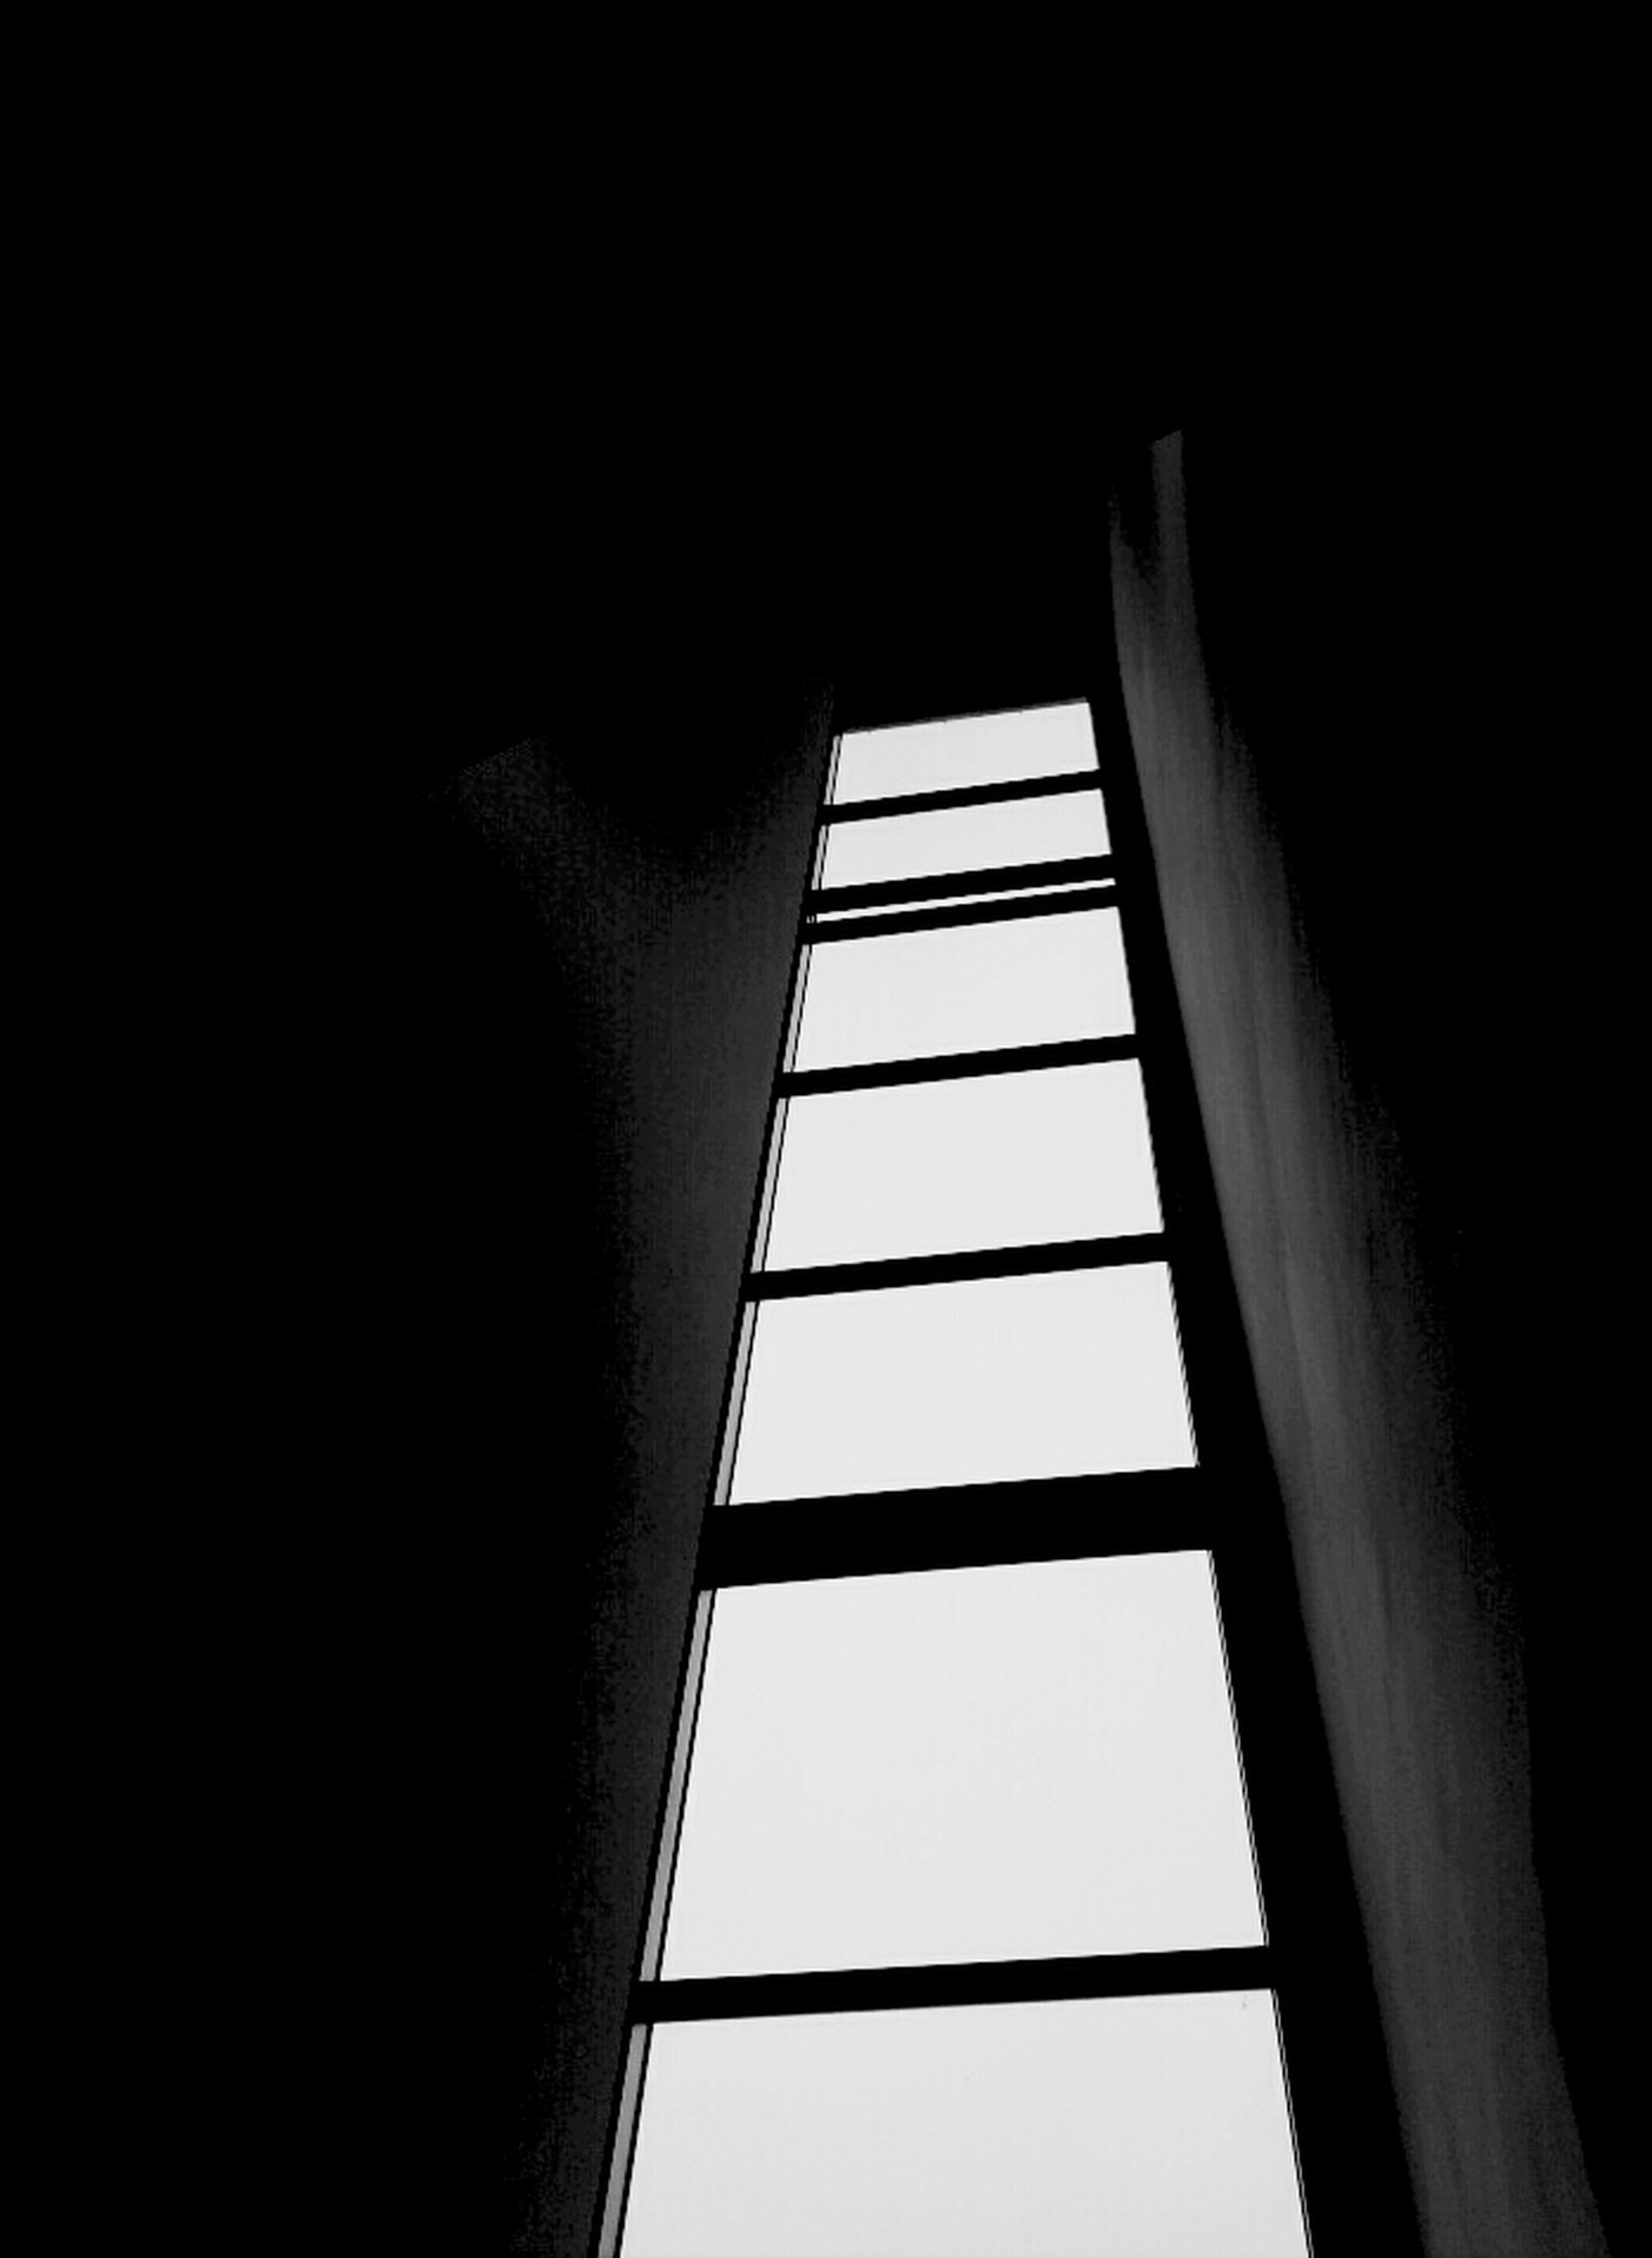 low angle view, indoors, built structure, architecture, clear sky, dark, copy space, window, sunlight, no people, day, silhouette, building, shadow, wall, part of, directly below, close-up, wall - building feature, sky